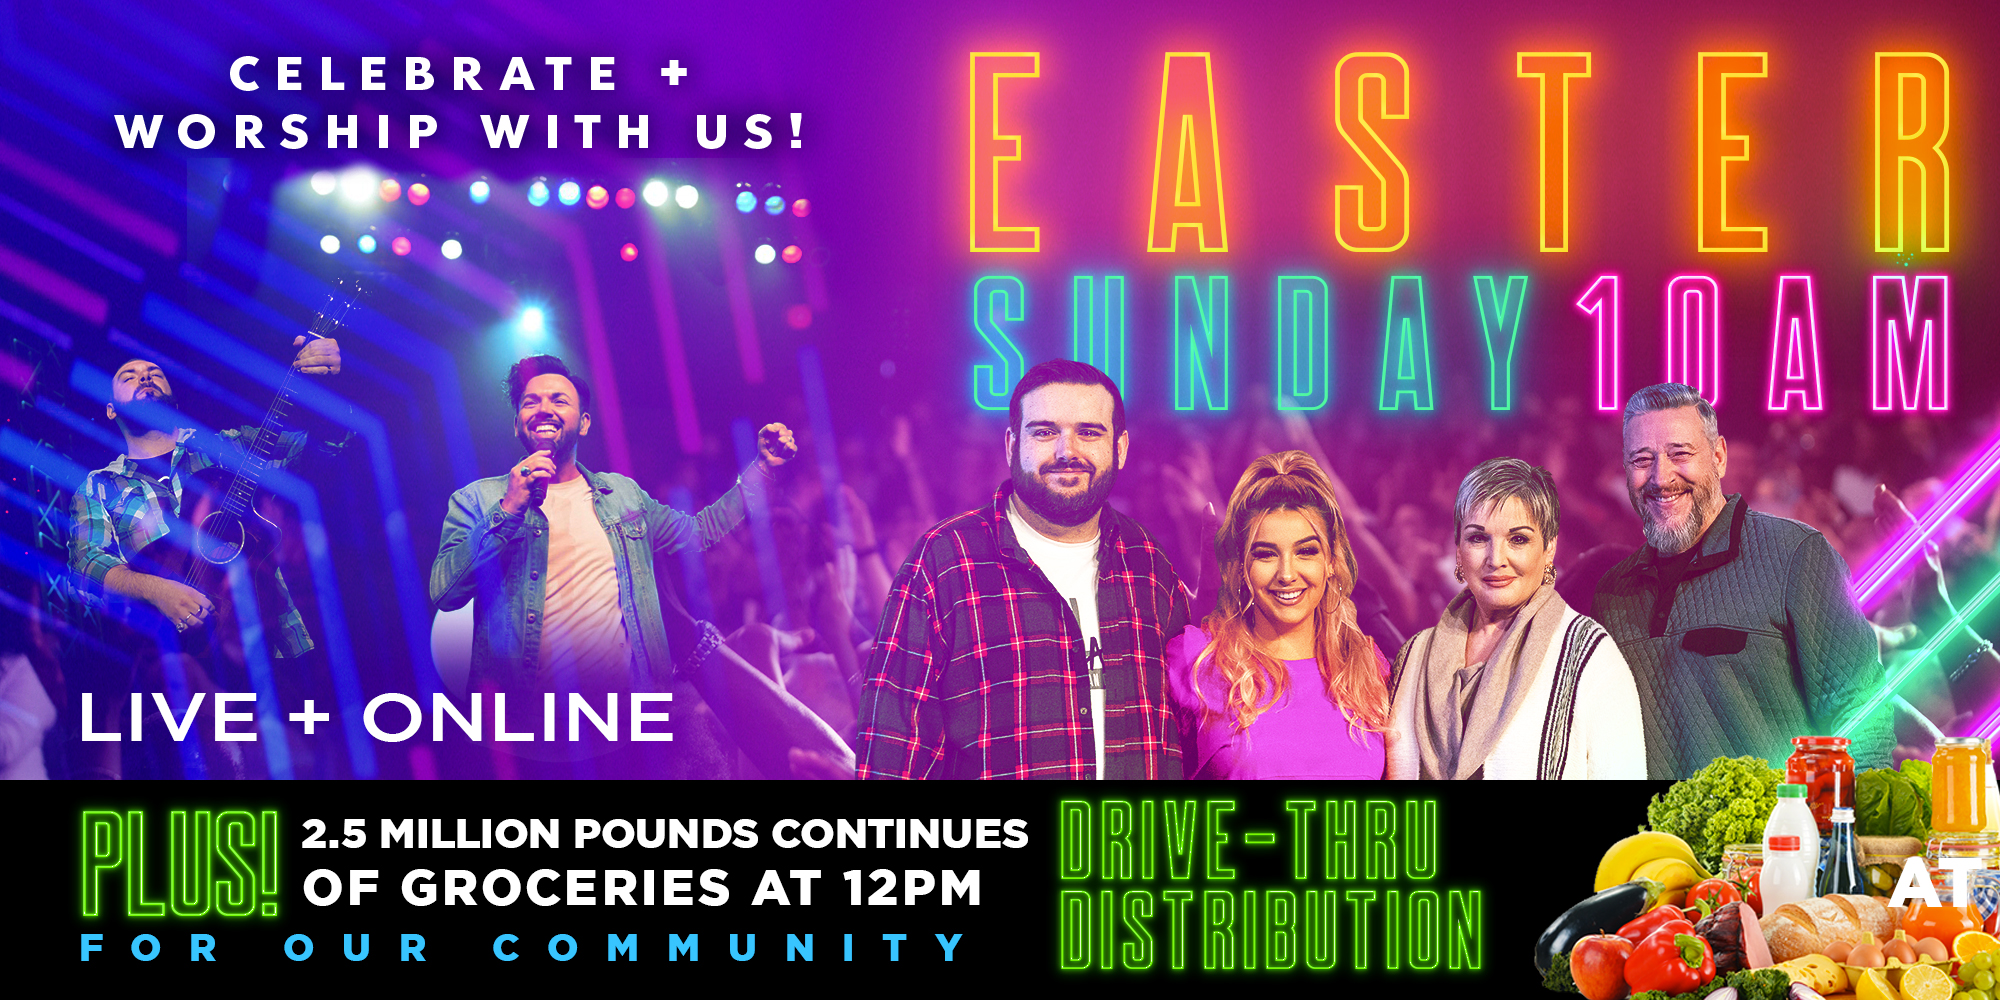 Celebrate + Worship with Us! Easter Sunday 10 Am Live + Online Plus! 2.5 Million Pounds of  Groceries Continues  at 12 Pm for Our Community Drive-thru Distribution